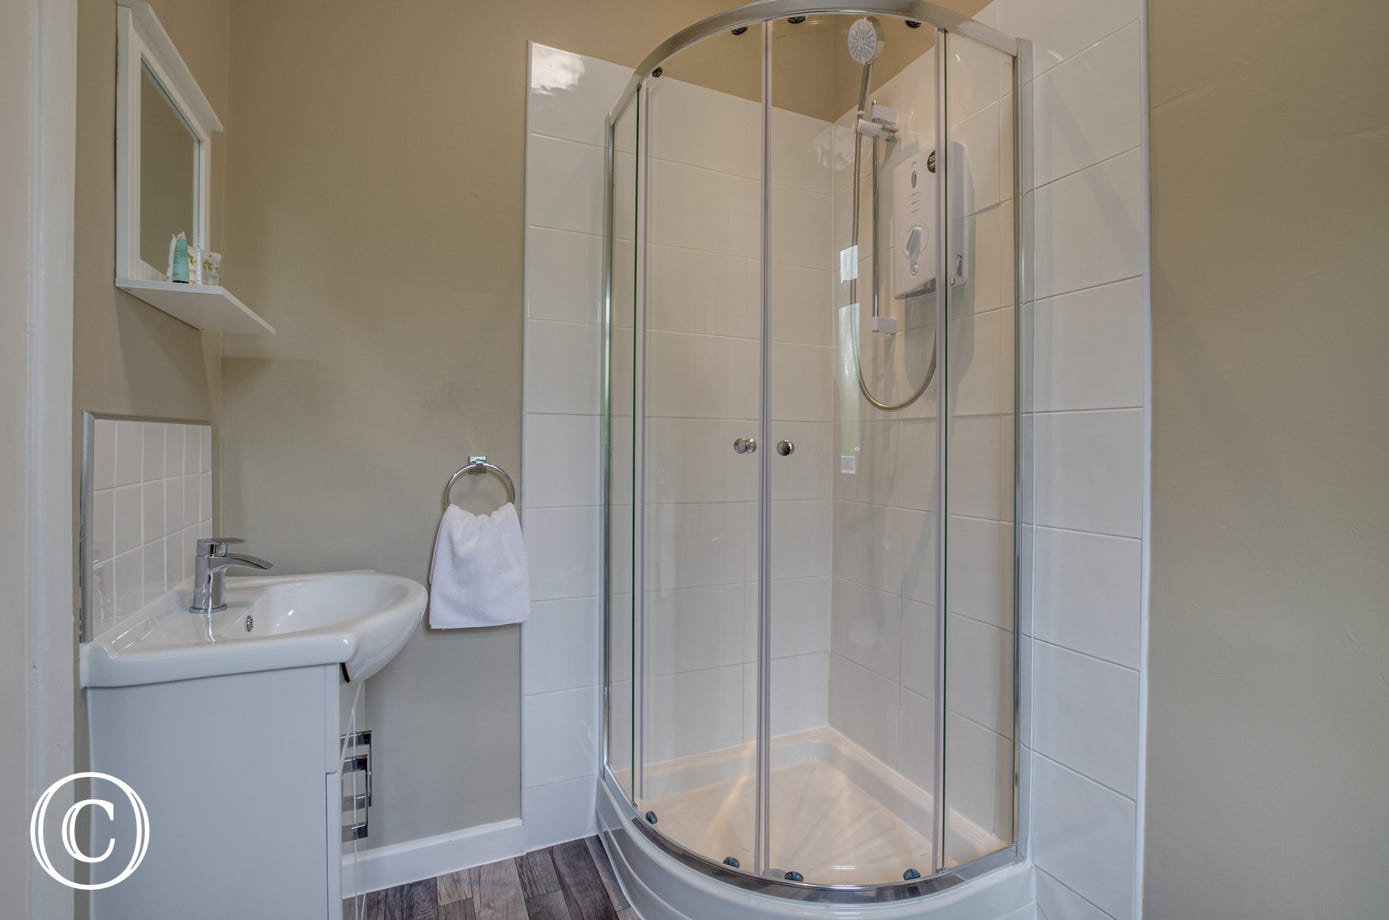 Bedroom 2 ensuite with shower cubicle, washbasin & wc